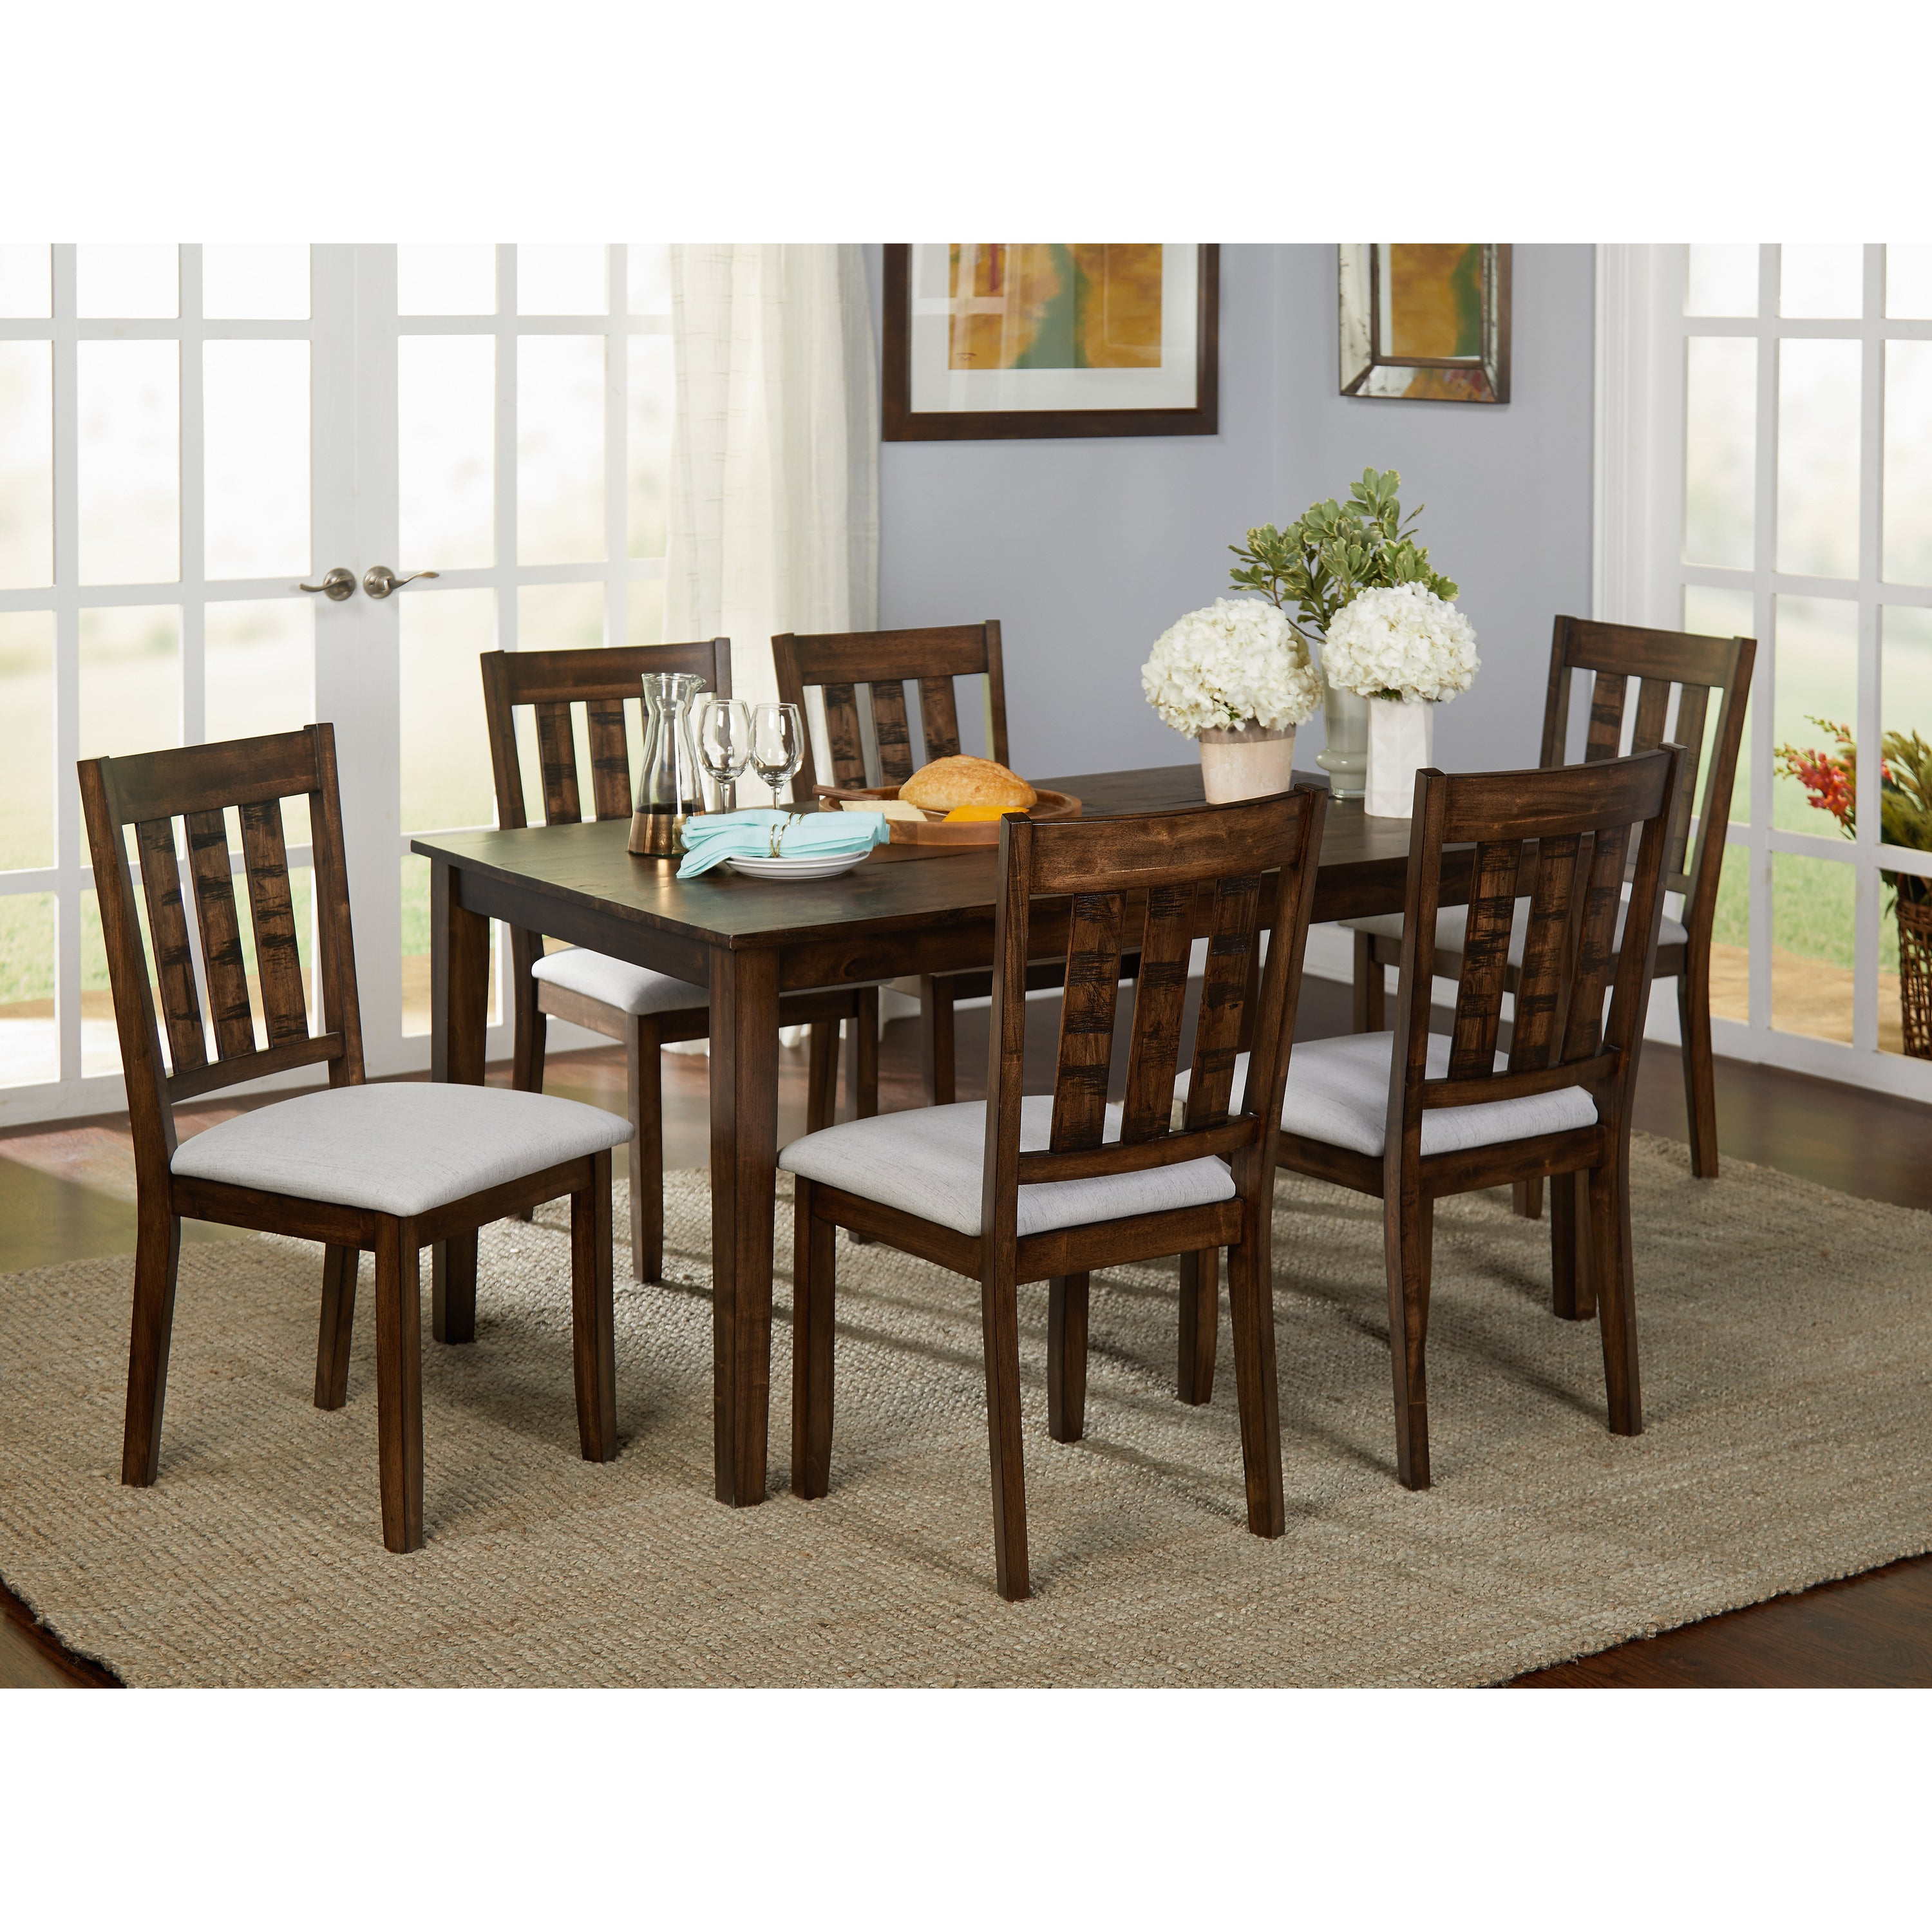 Newest Sheetz 3 Piece Counter Height Dining Sets pertaining to Buy Kitchen & Dining Room Sets Online At Overstock